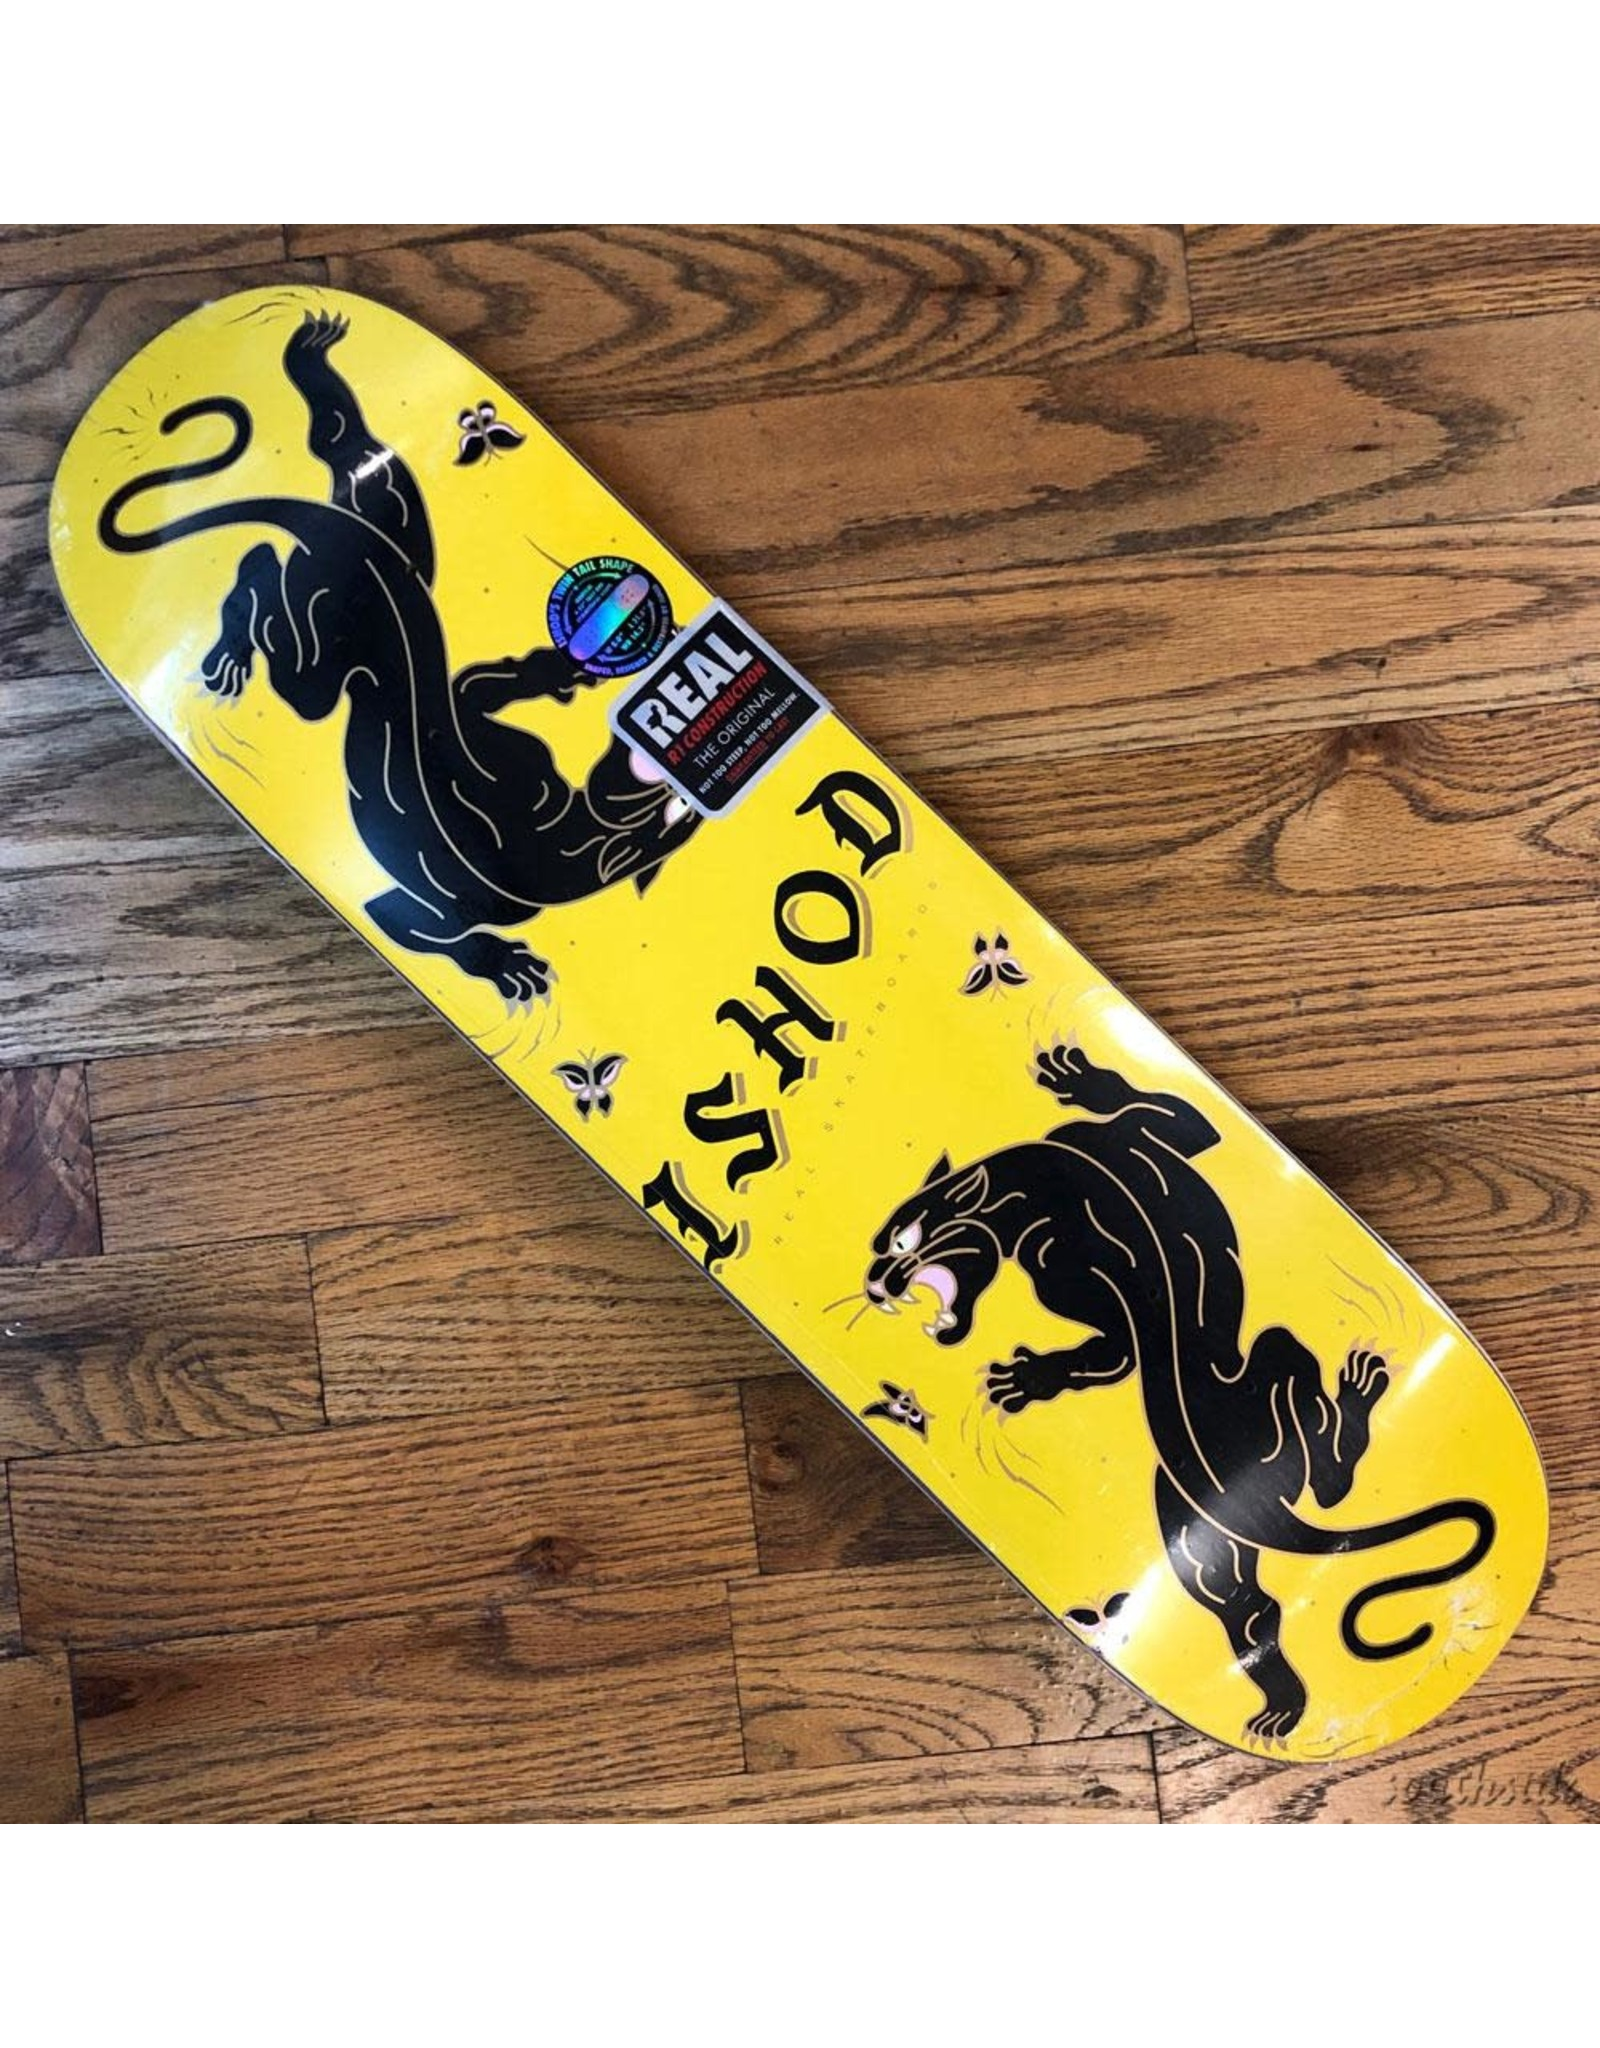 Real Deck Ishod Catscratch Yellow 8